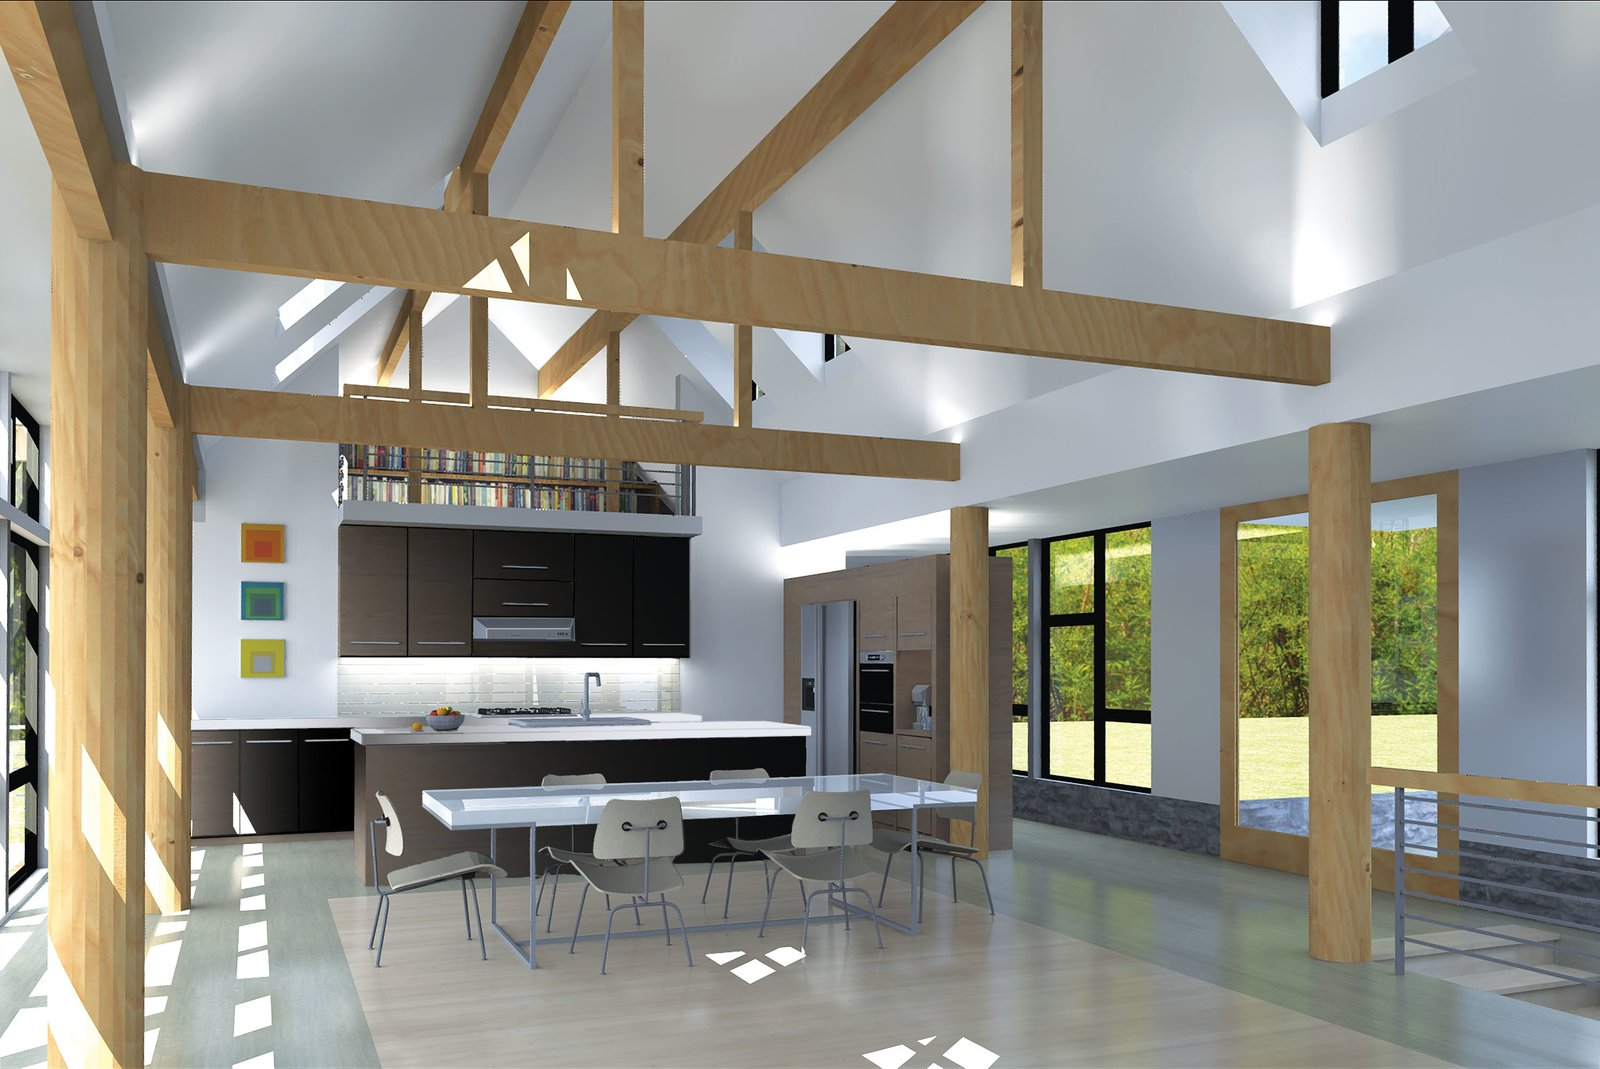 A rendering illustrates the loft, which the homeowners plan to use as a reading room, overlooking the living area. Keeping things contemporary, they have chosen white countertops, black cabinetry, and stainless steel appliances for the kitchen.  The wooden supports have been swapped out for black steel poles.